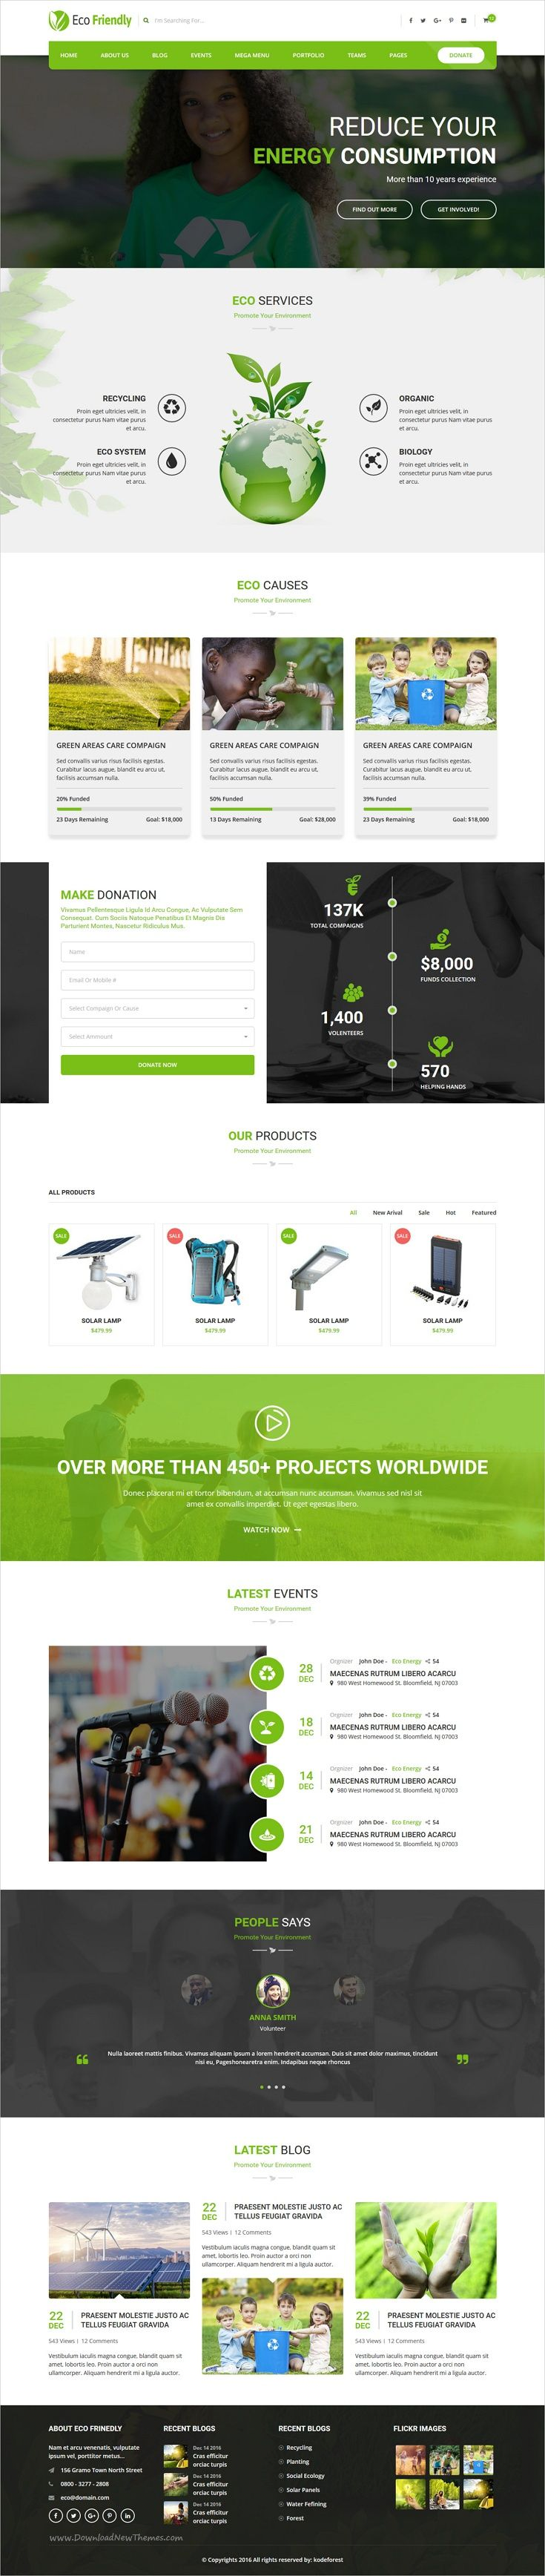 Eco friendly is a wonderful responsive #HTML bootstrap template for #environment, #organic life project or animals saving fund raiser websites download now➩ https://themeforest.net/item/eco-friendly-environmental-ecology-template/19266637?ref=Datasata